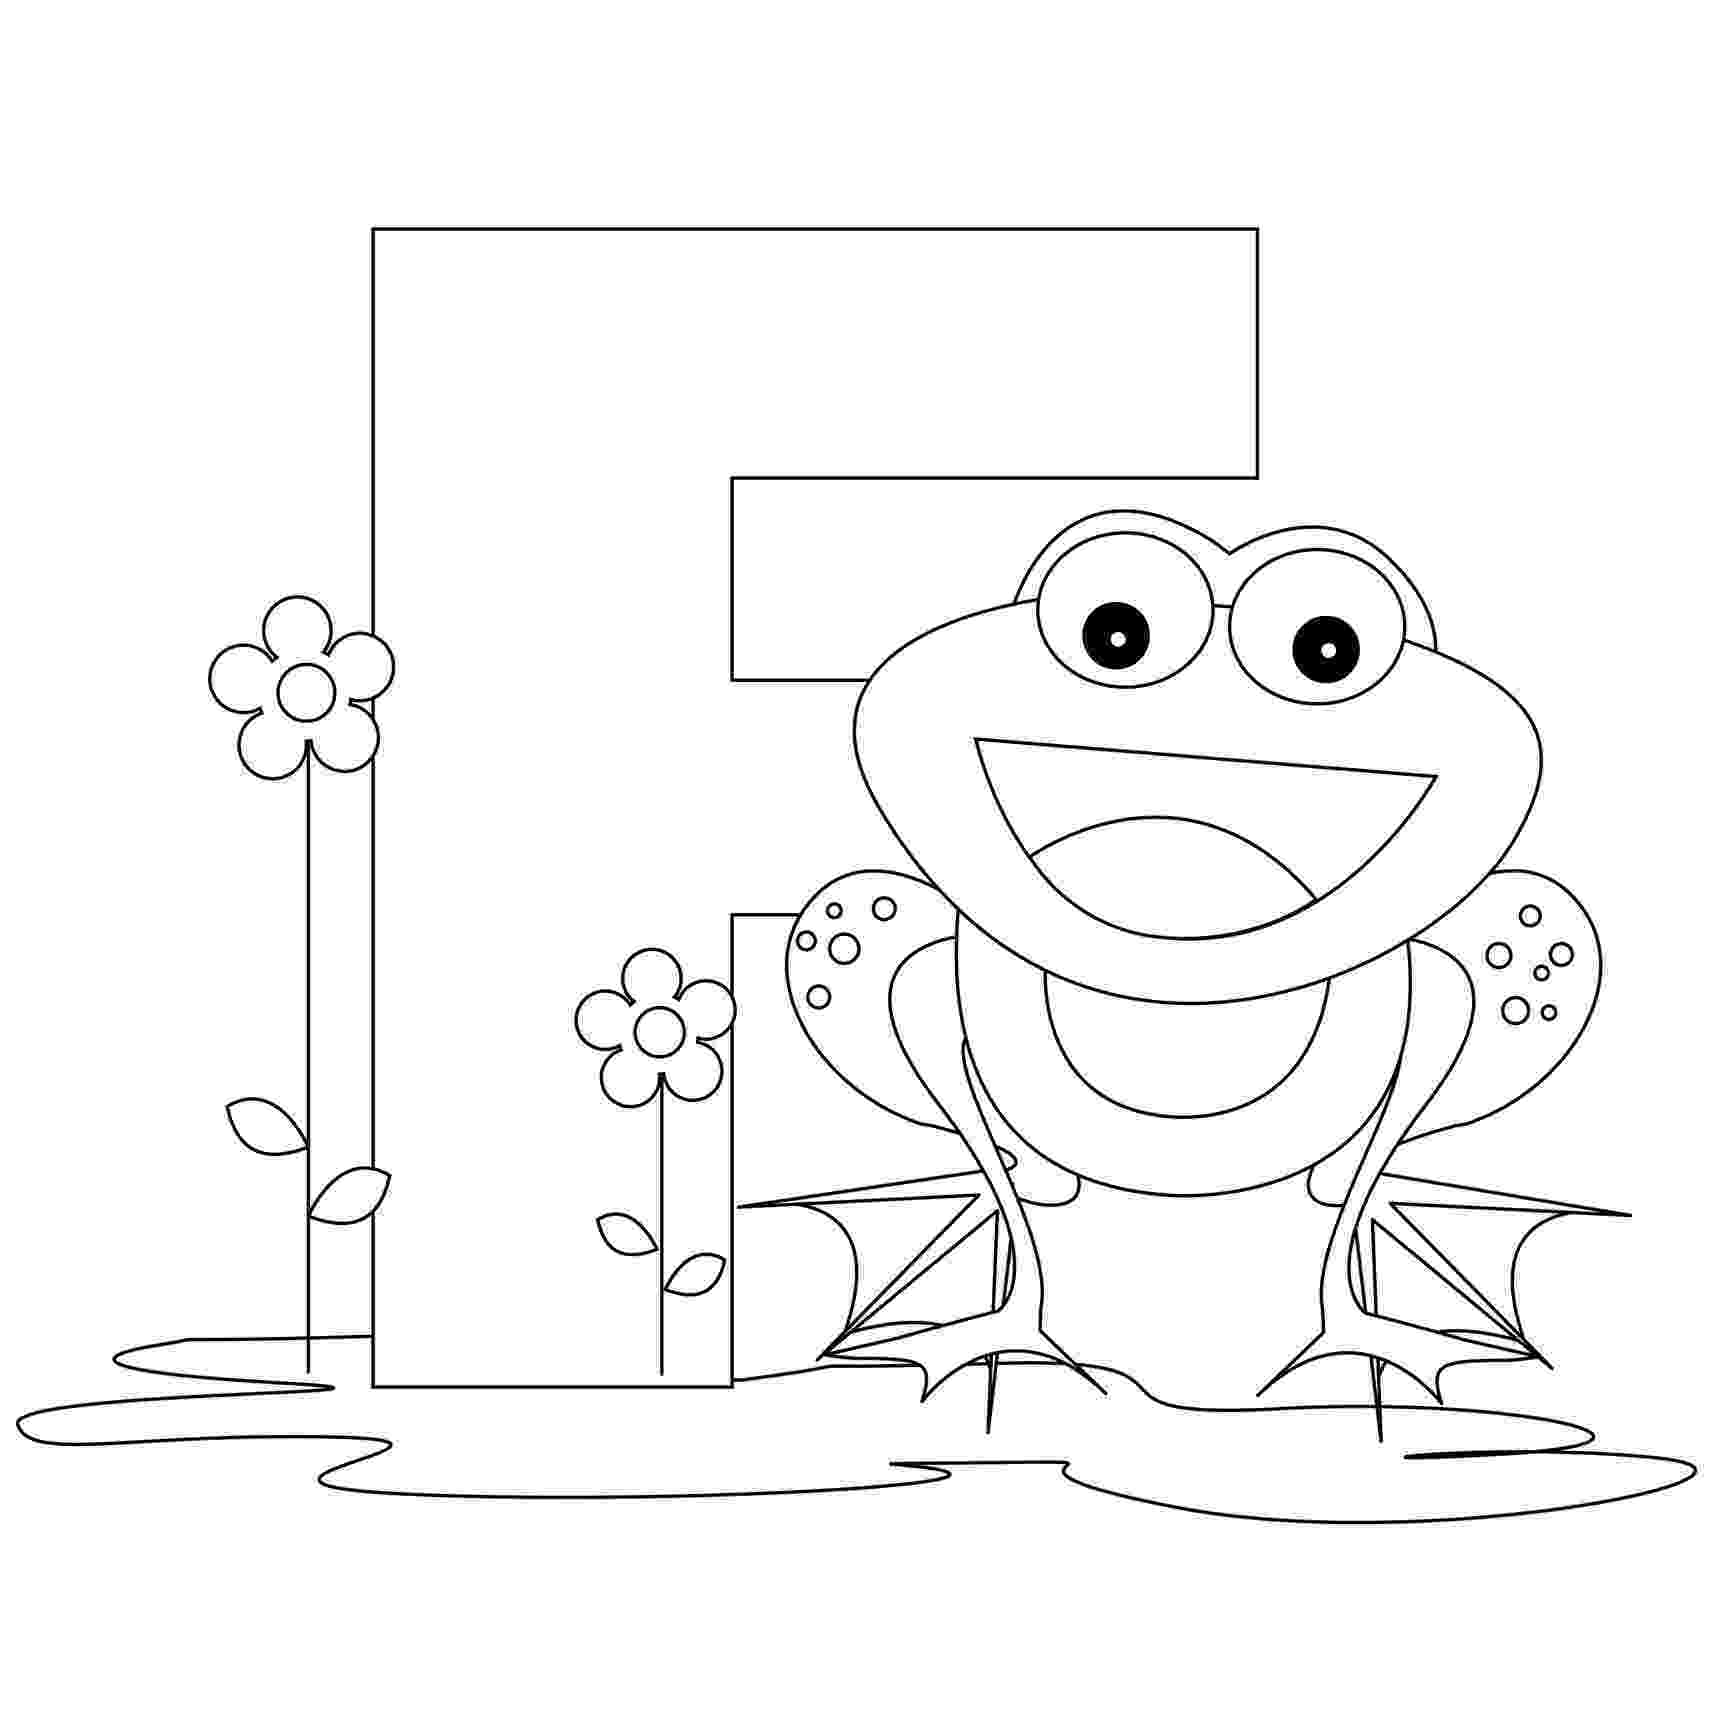 printable coloring book letters letter d coloring pages to download and print for free printable coloring book letters